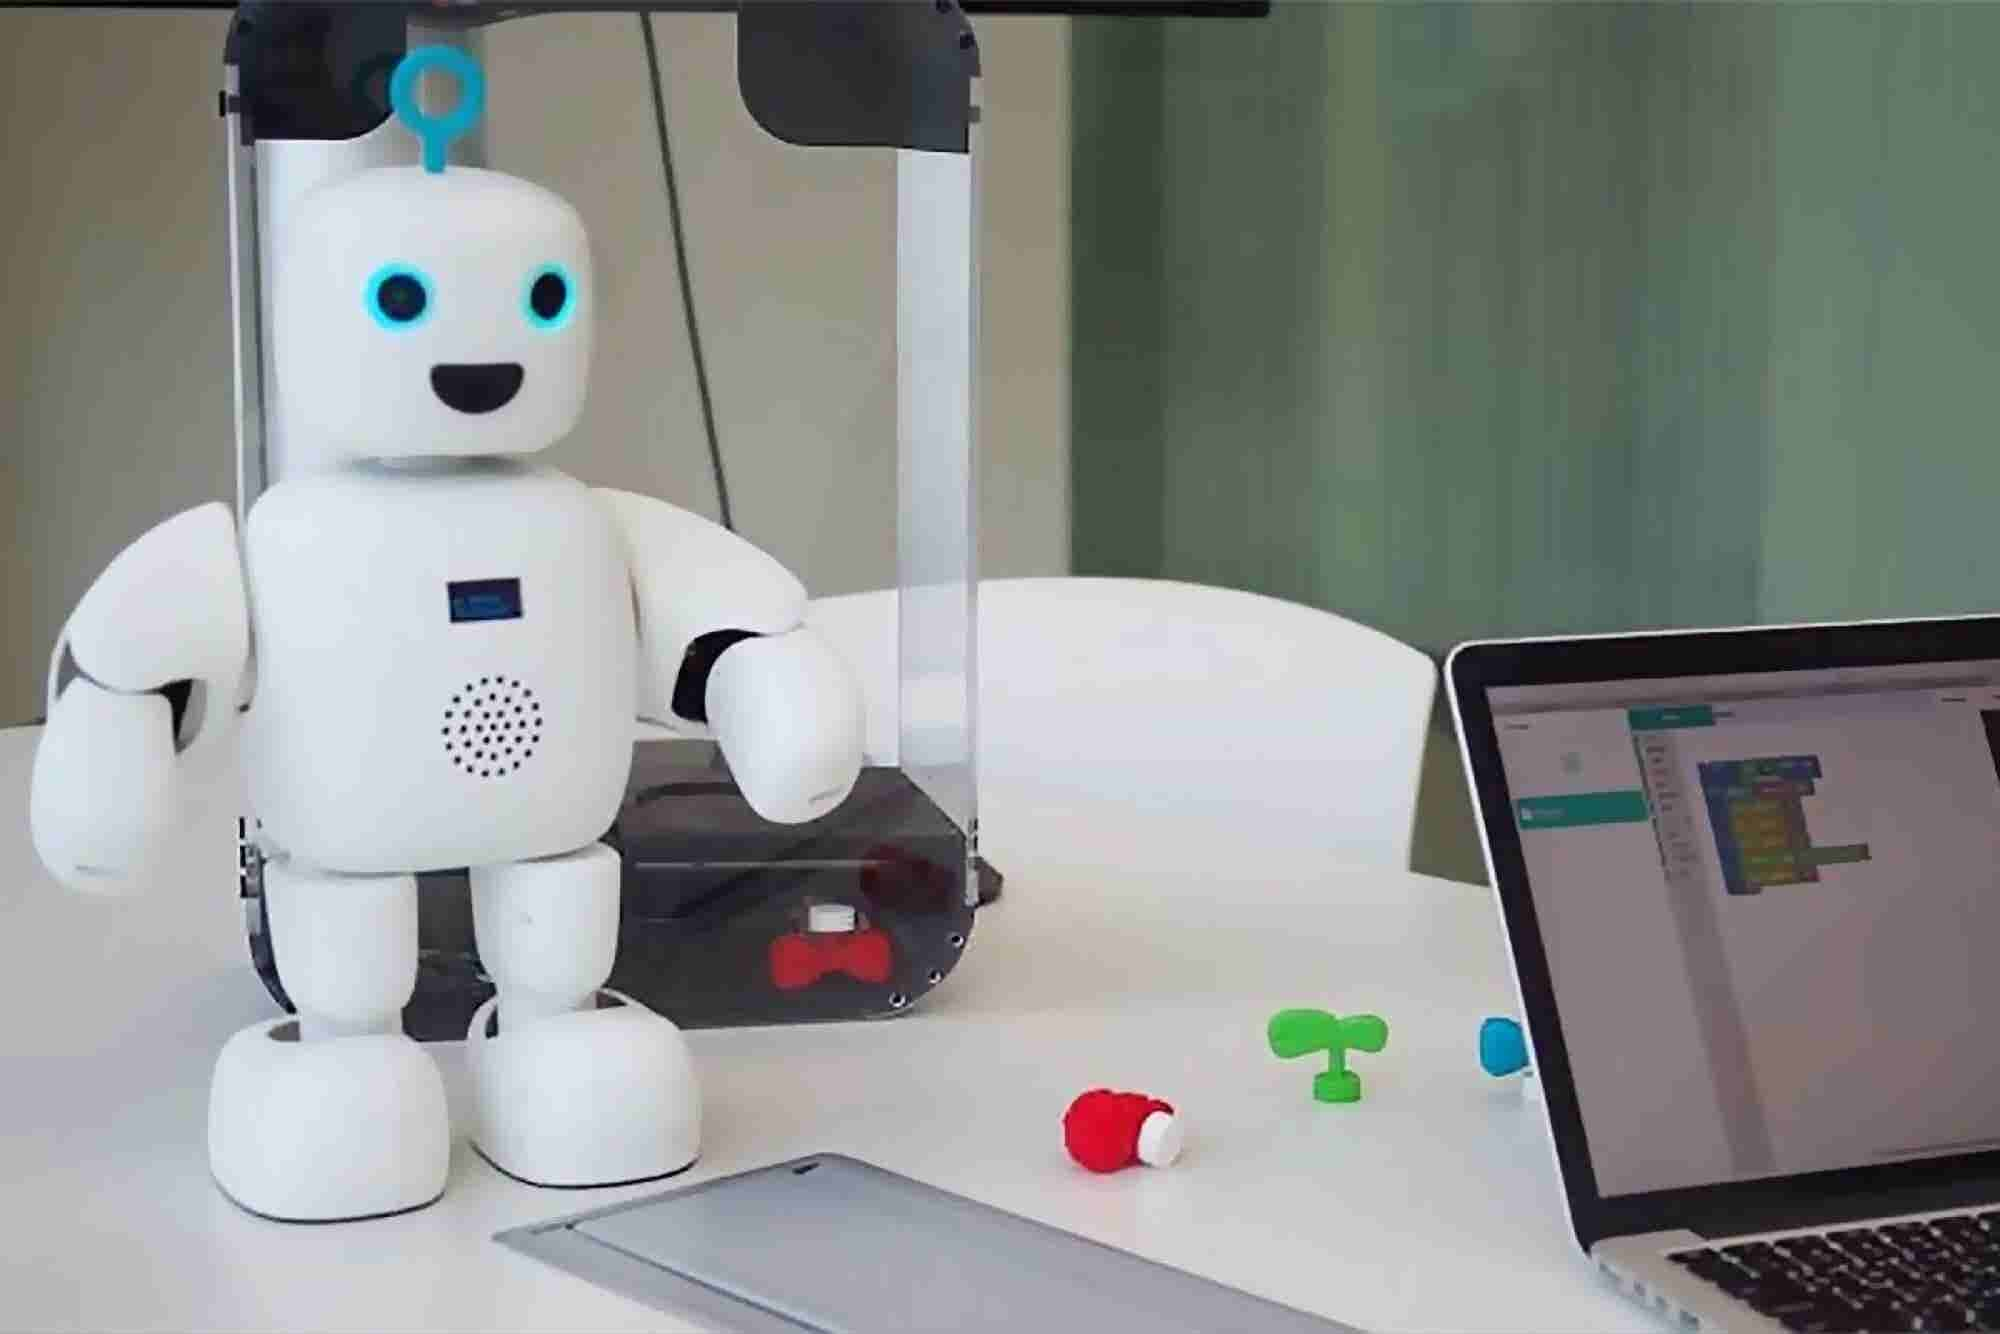 Your Next Cute Robot May Be Korean